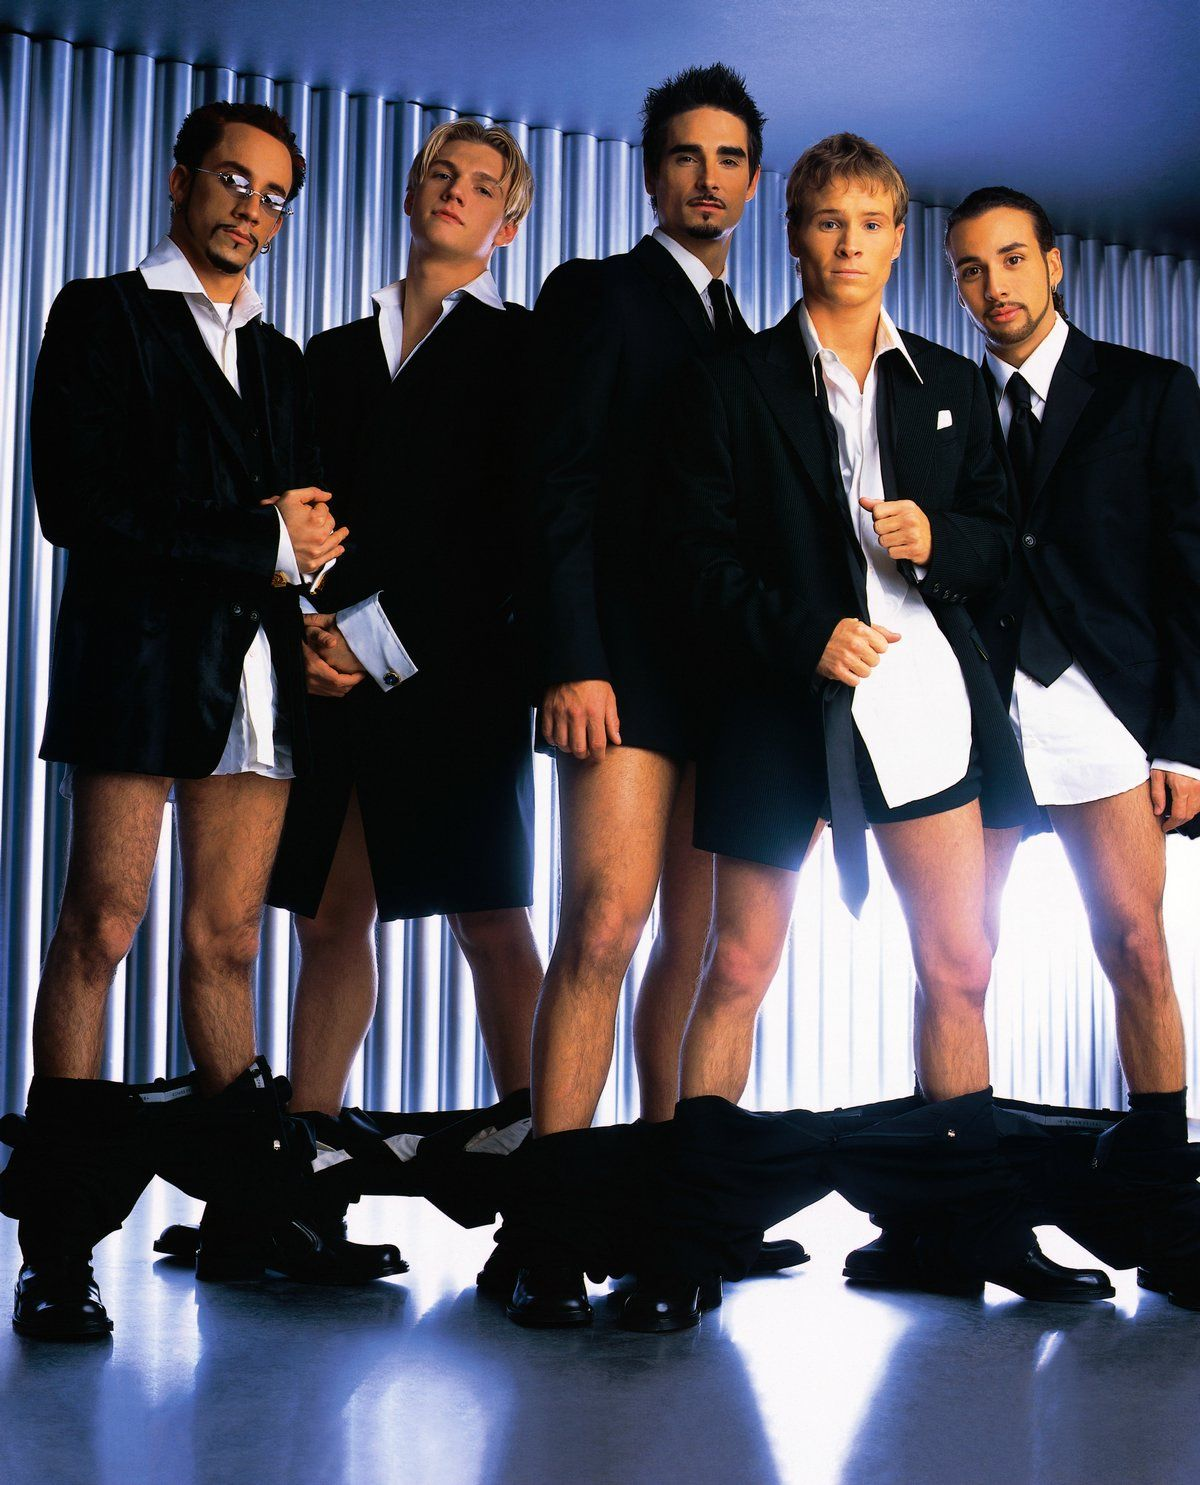 Backstreet band boy boy cute gay spoof